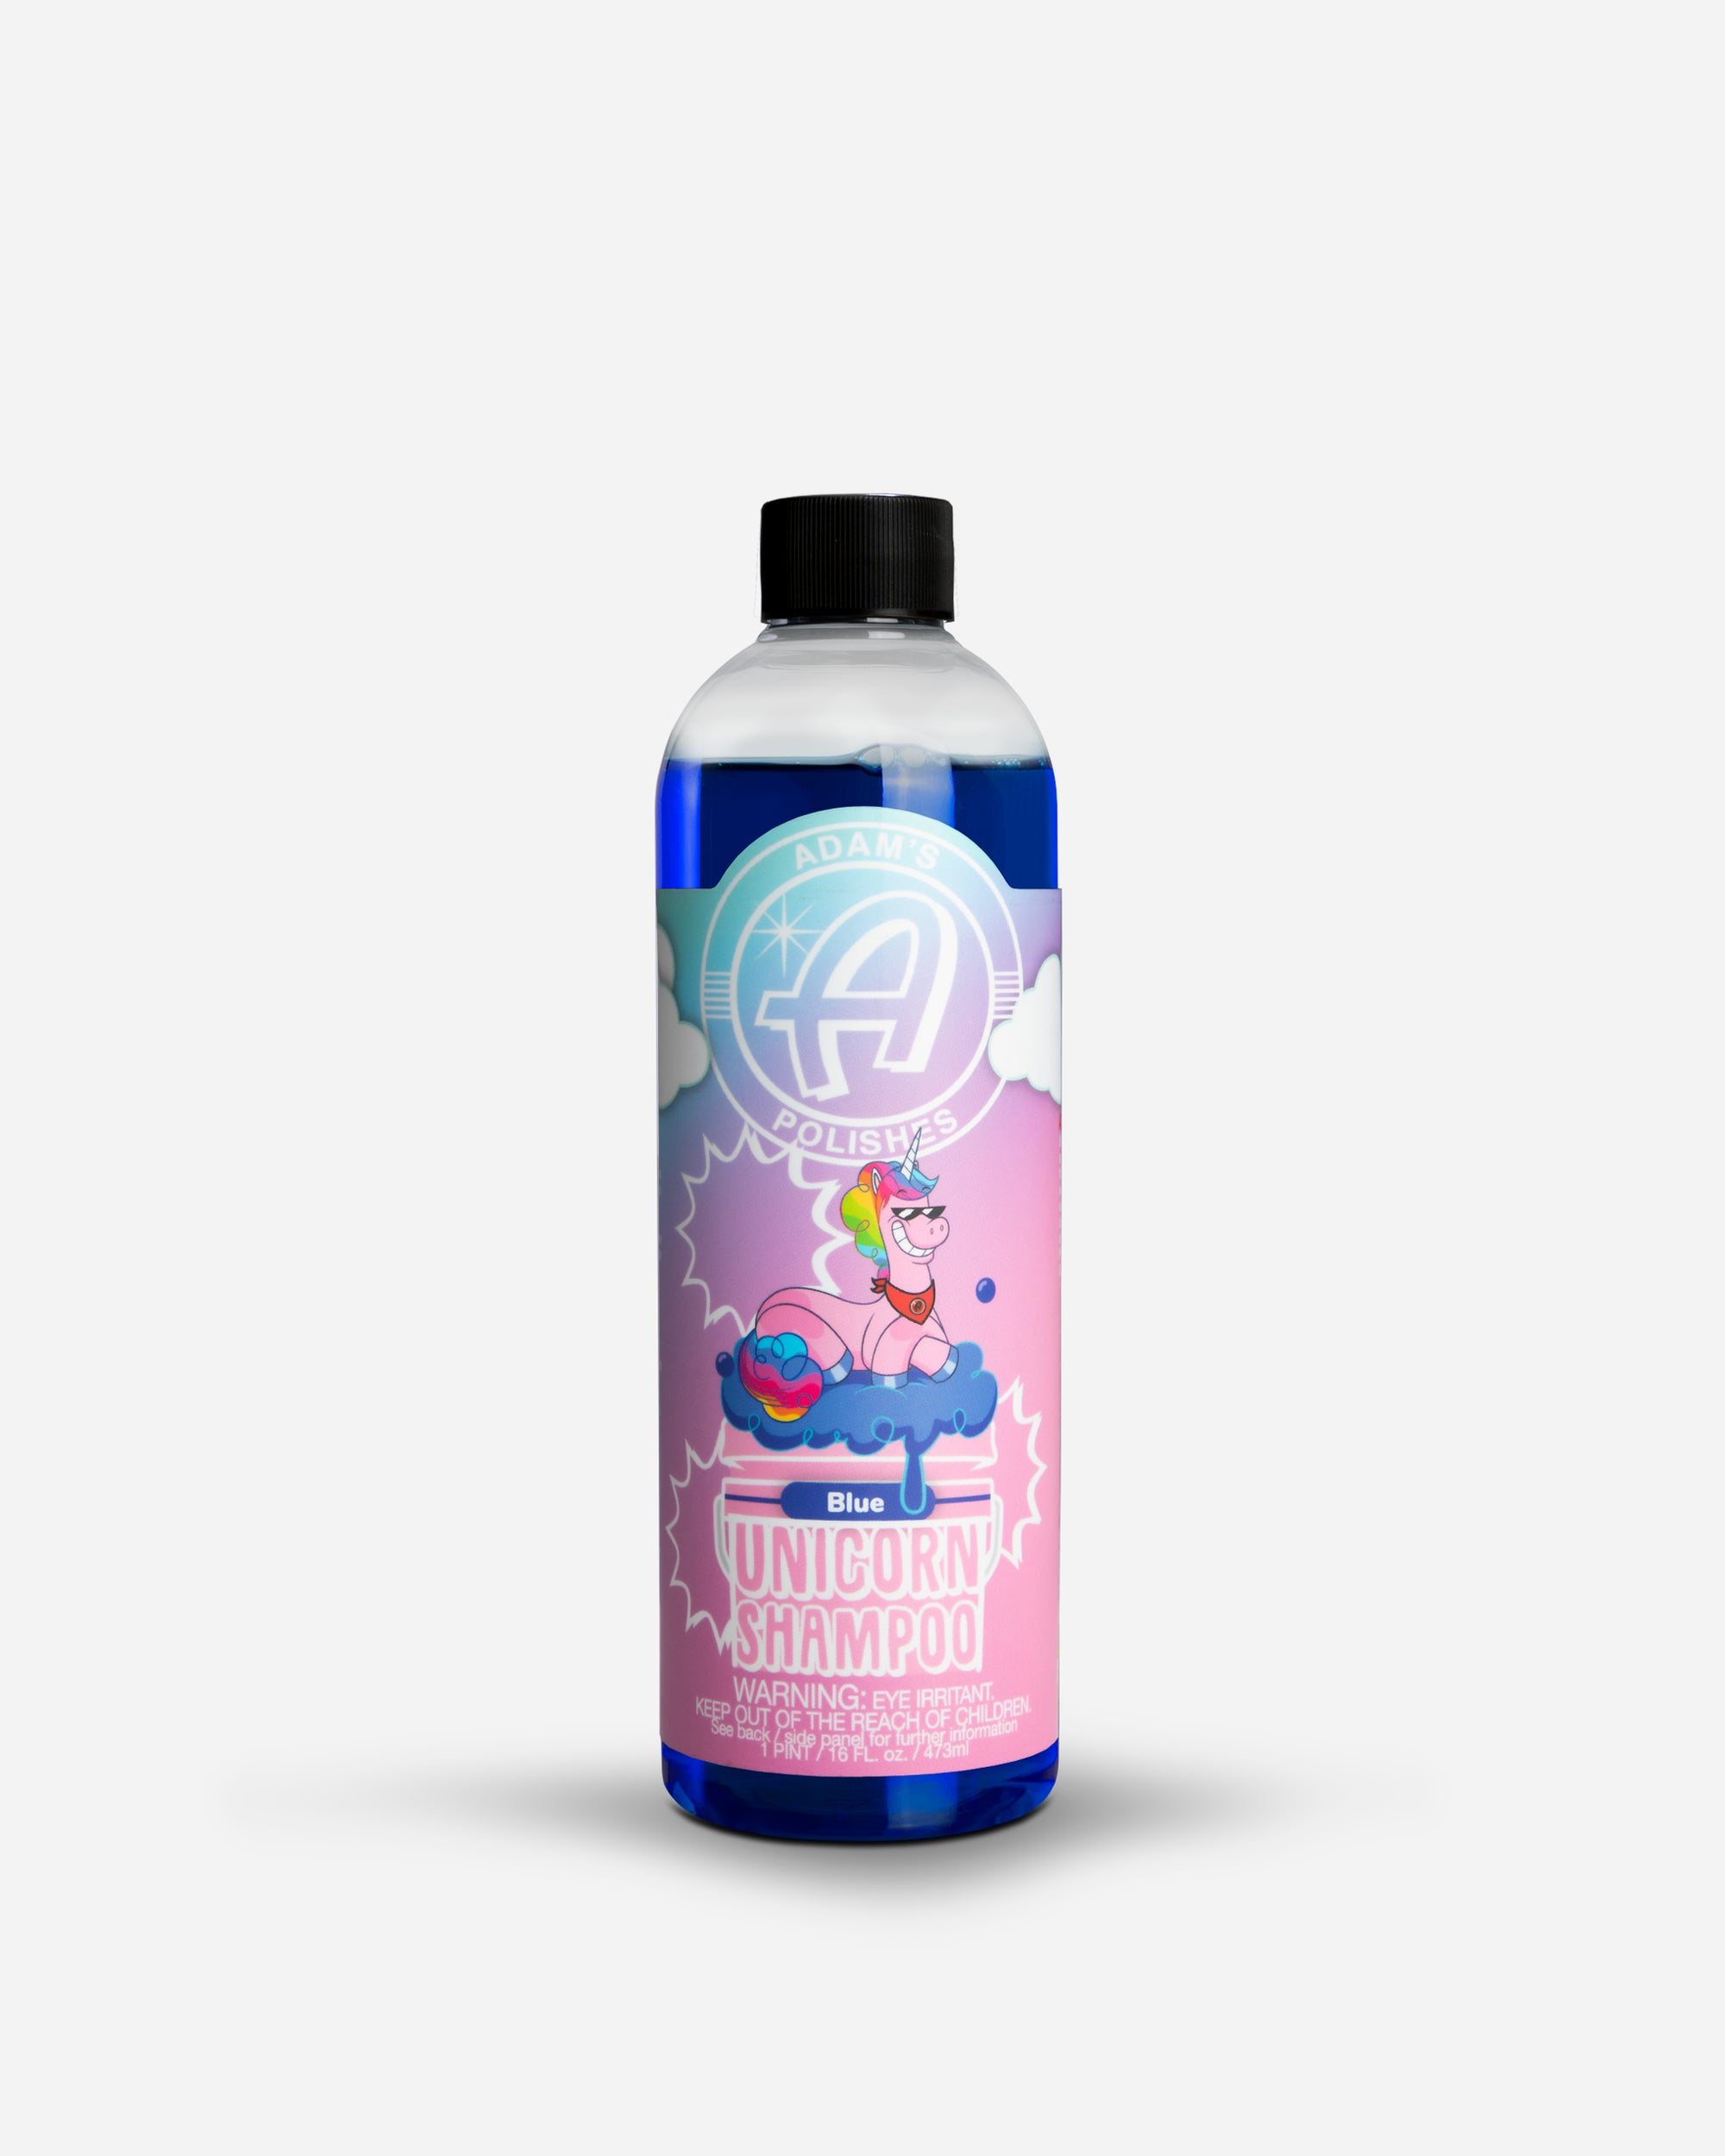 Adam's Blue Unicorn Shampoo